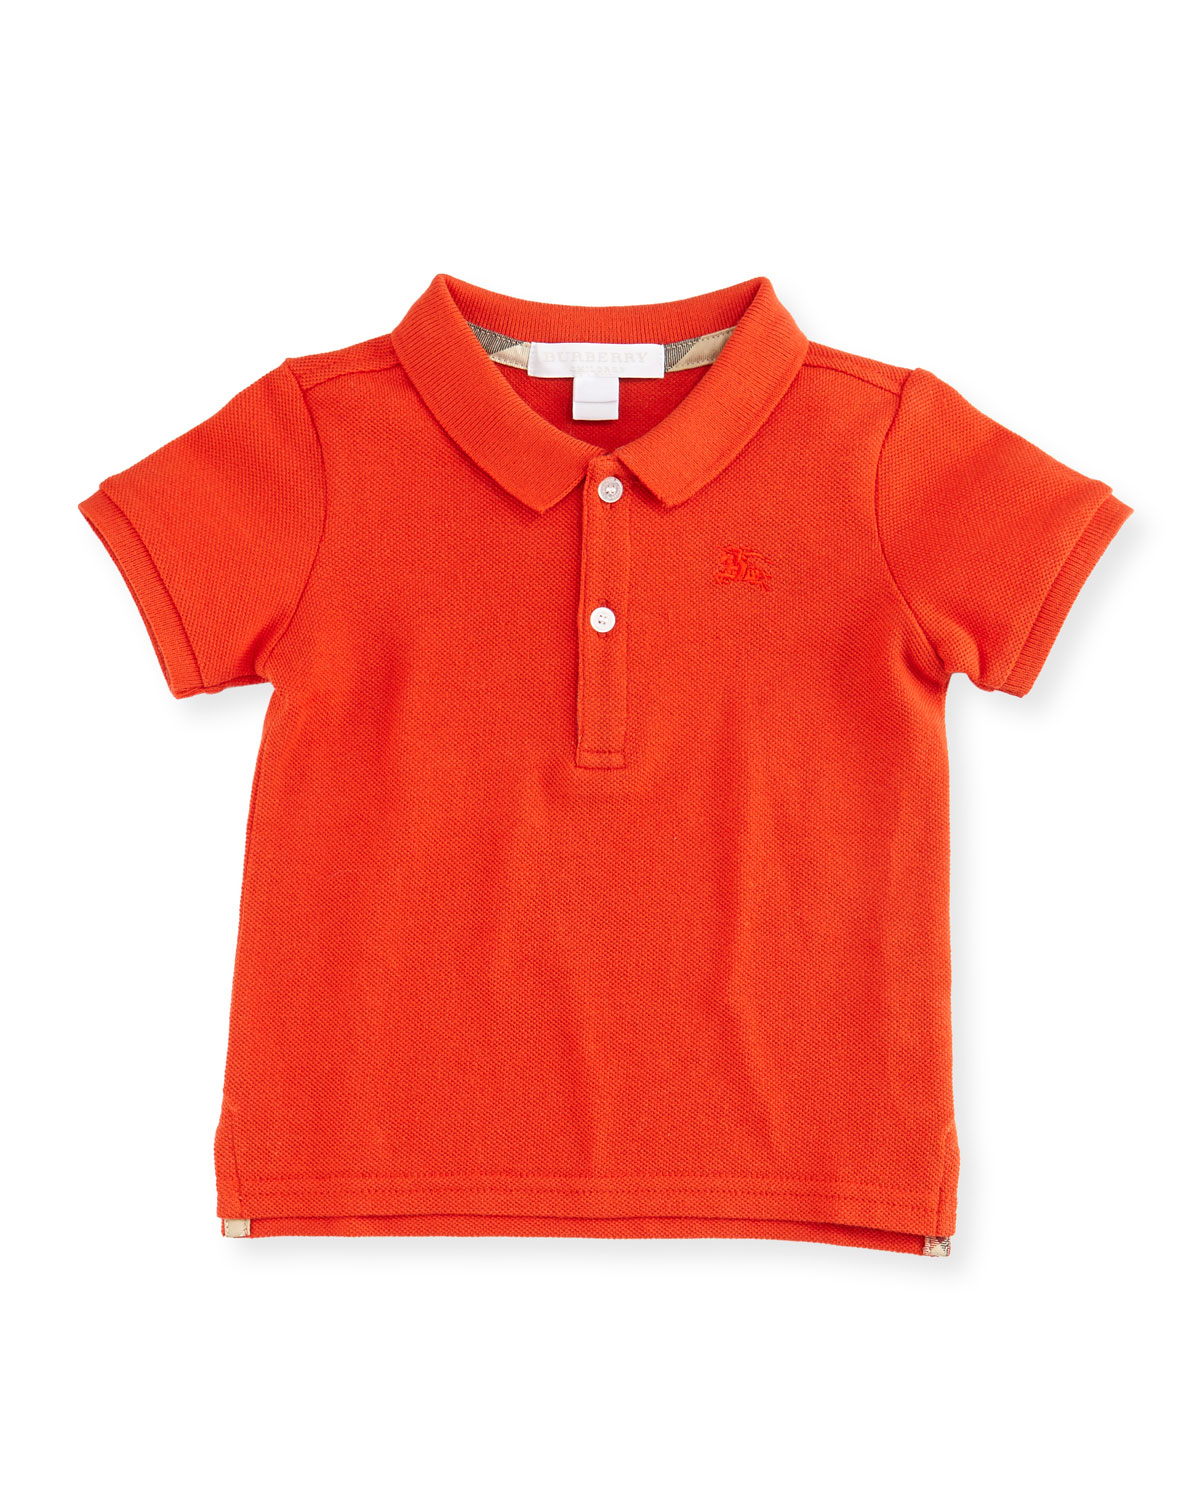 Palmer Short-Sleeve Pique Cotton Polo Shirt, Red-Orange, Size 6M-3